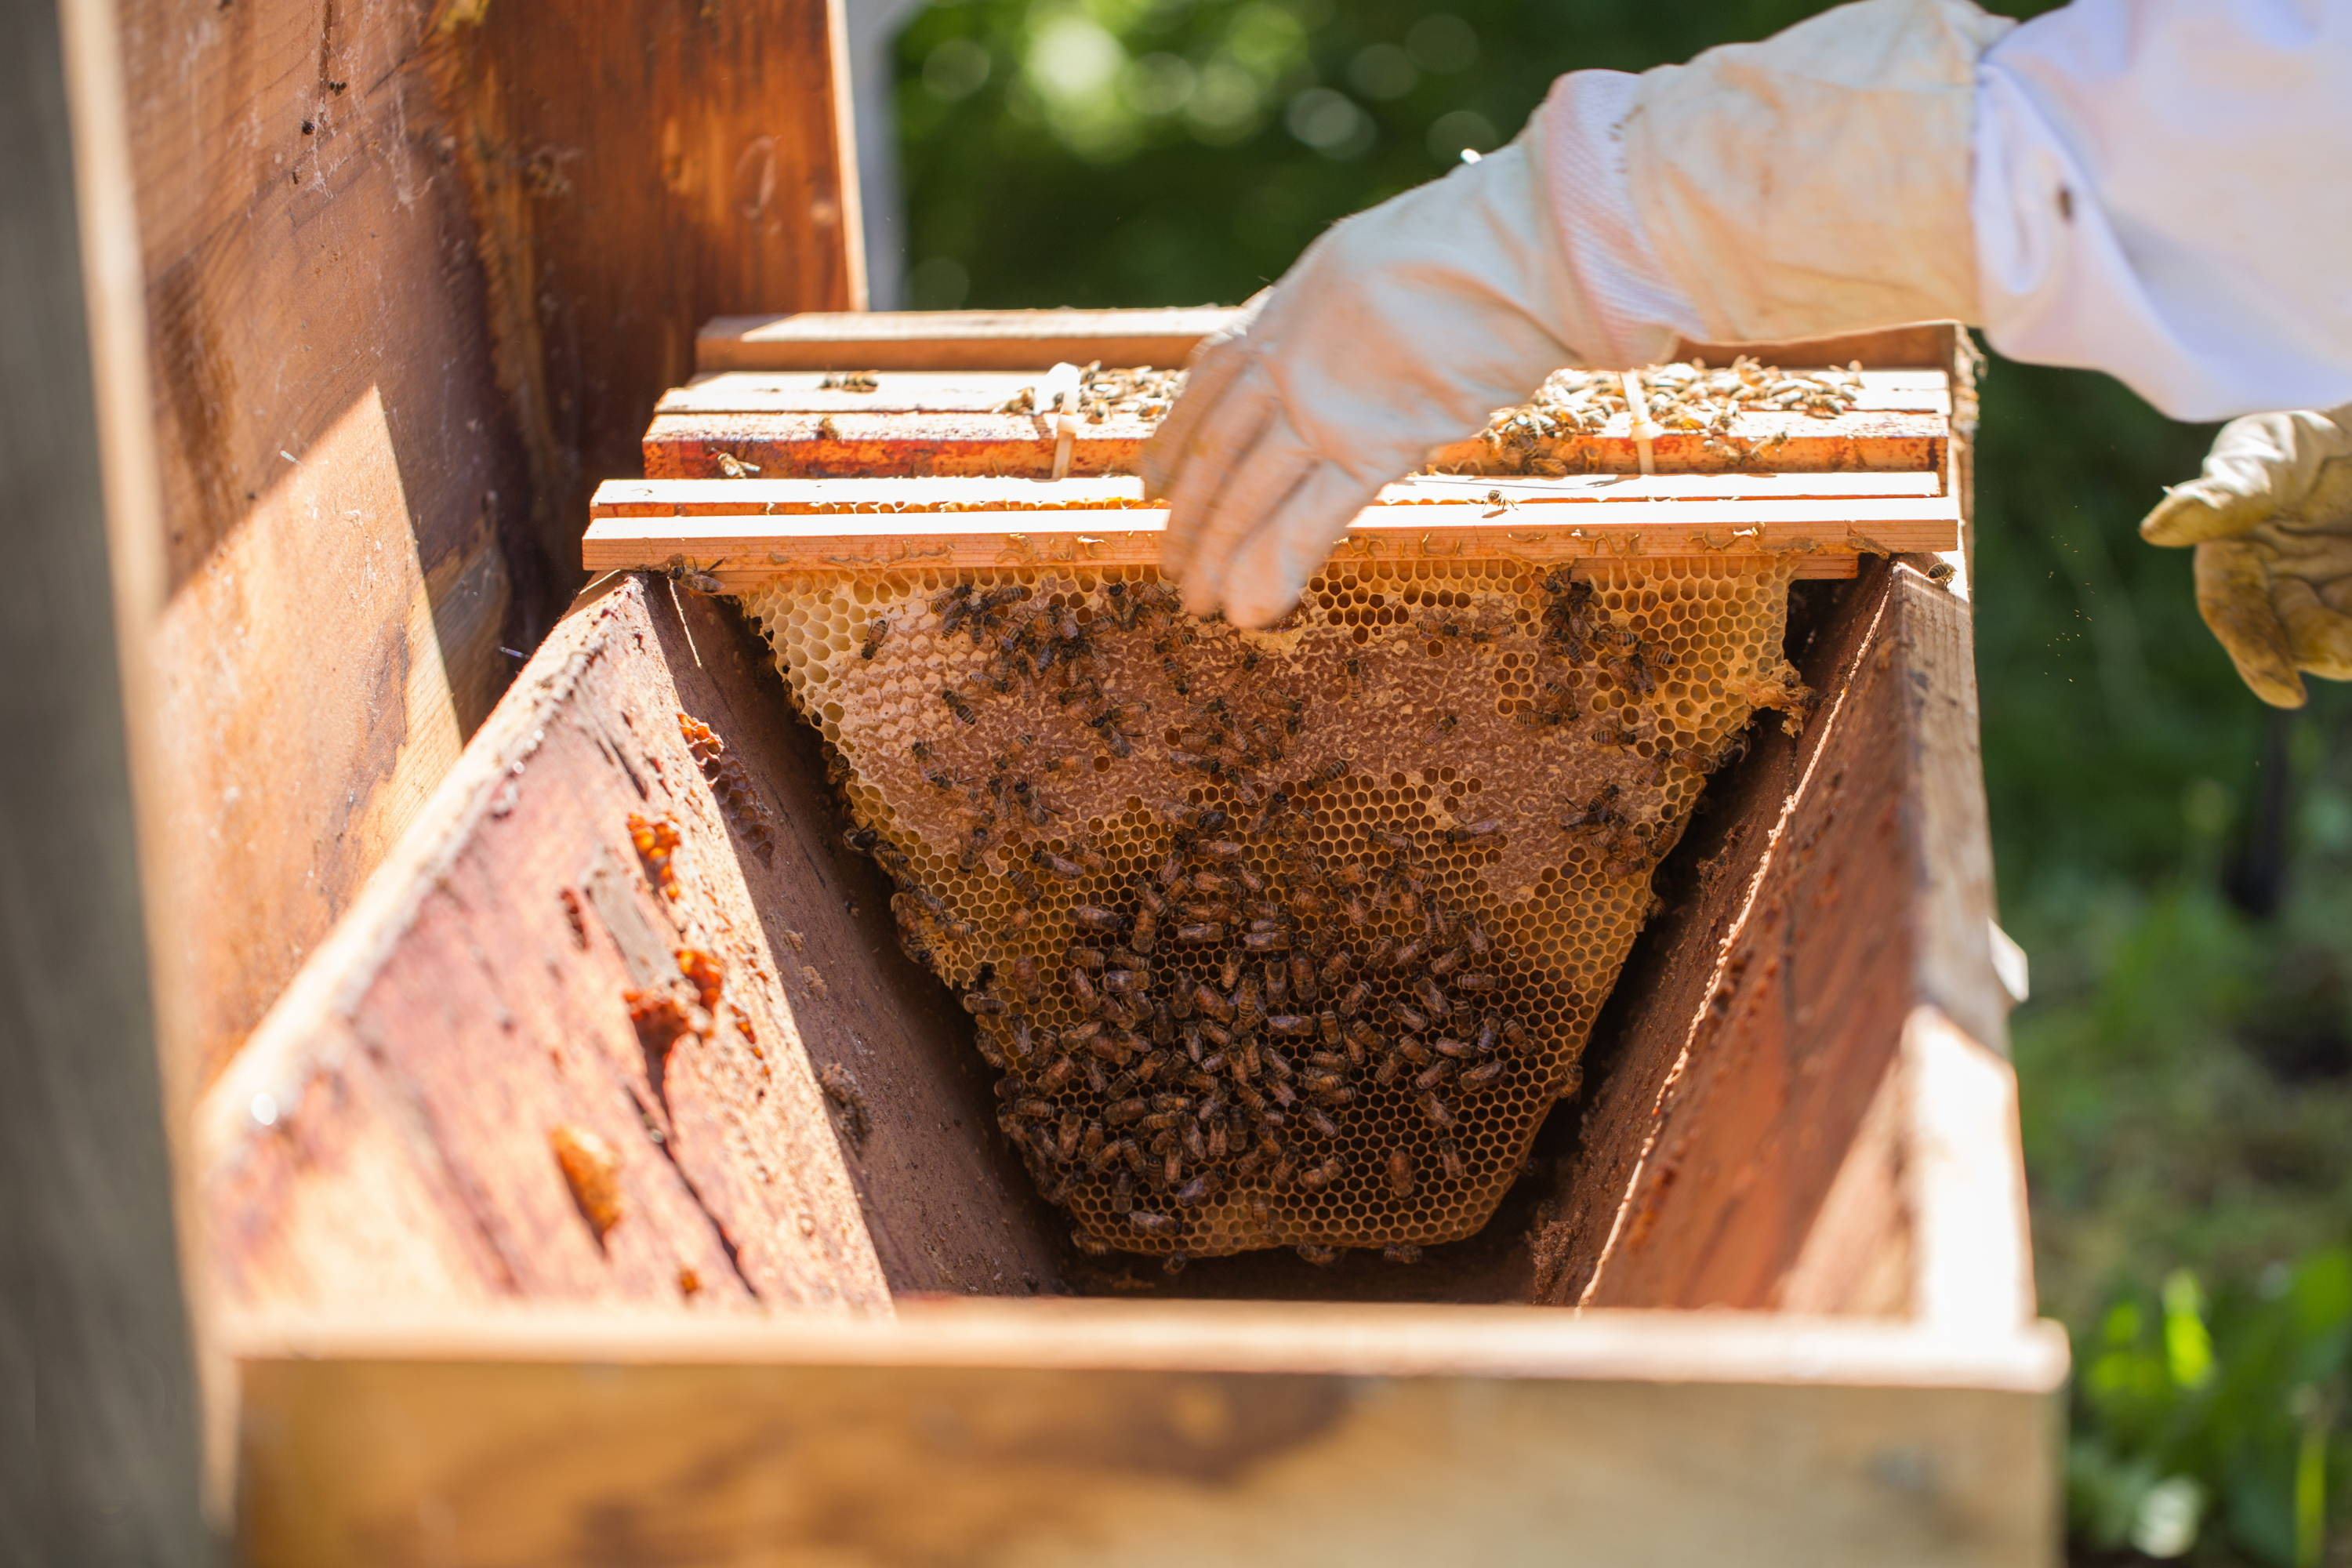 A Beekeeper And Honeybees With A Top Bar Hive